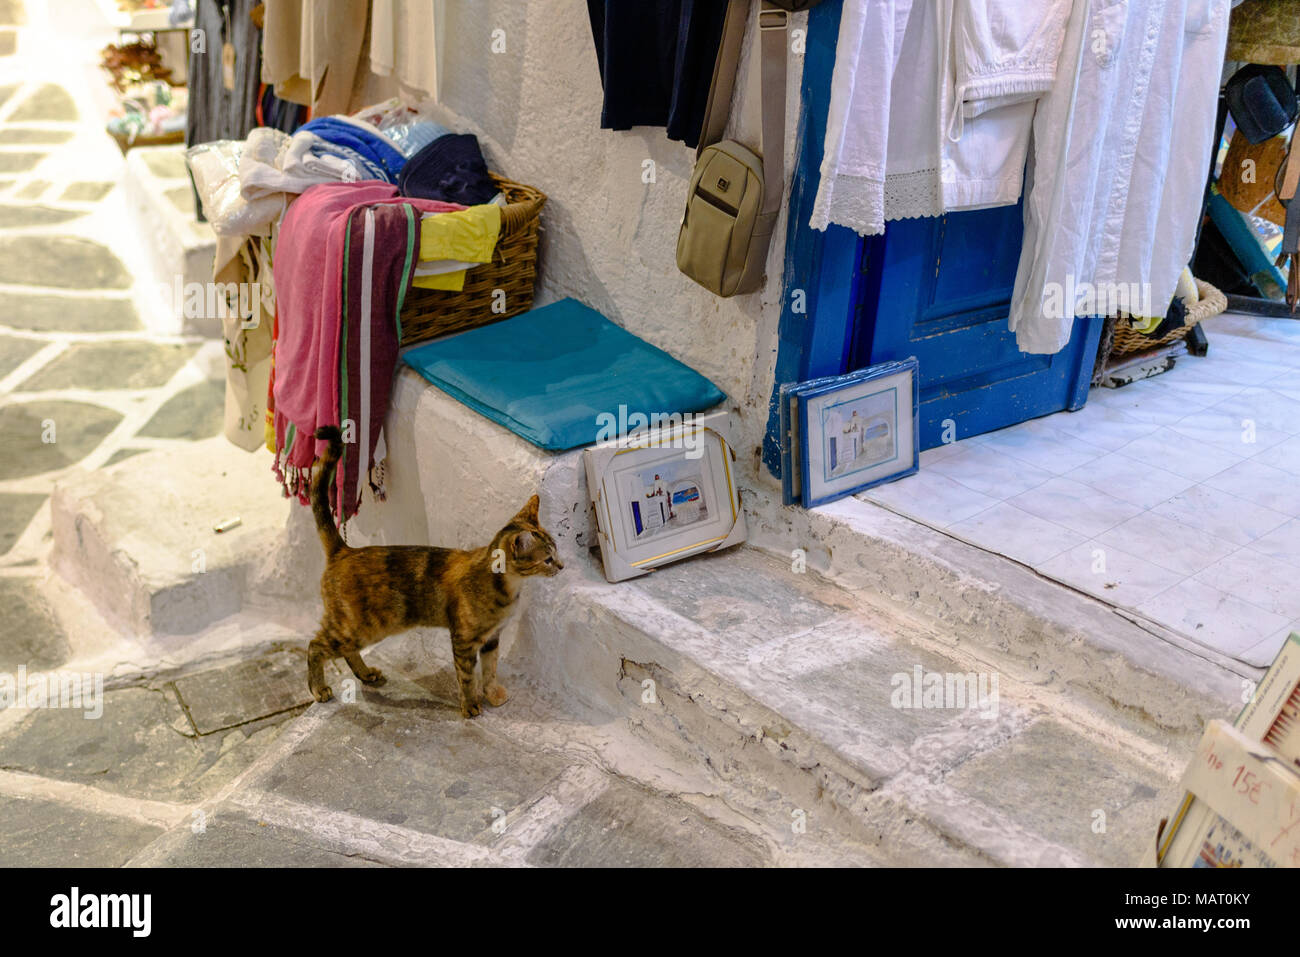 A kitten looking into a shop in Ios town - Stock Image